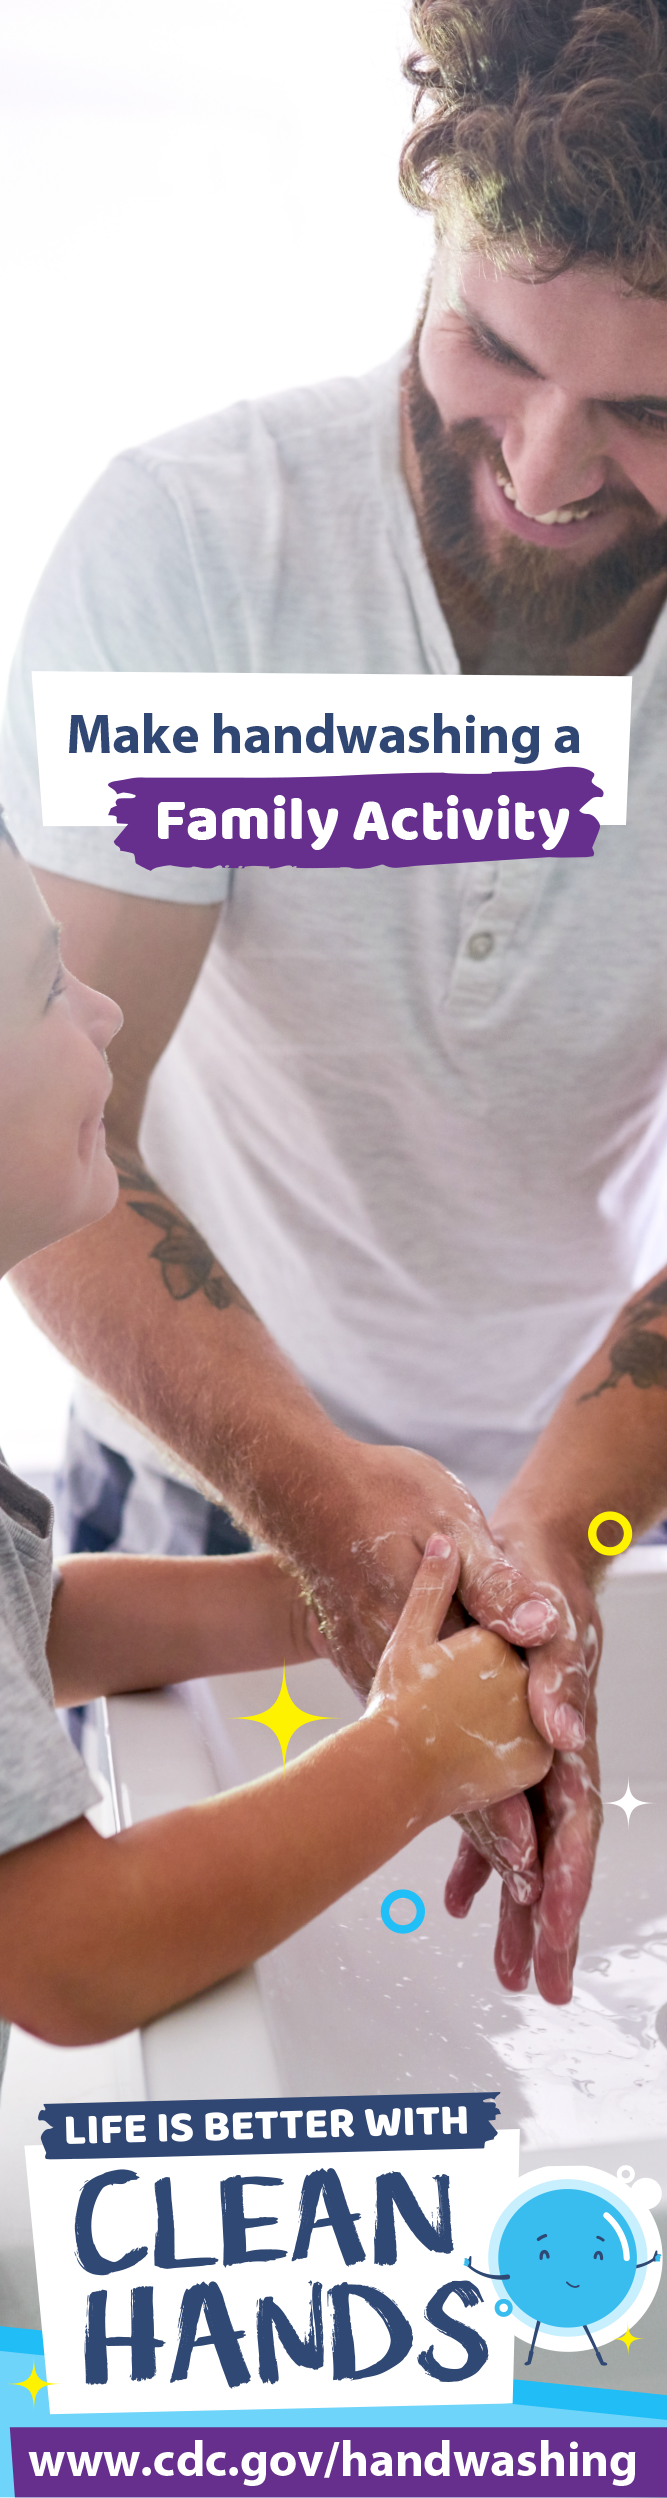 Image of a father helping his son wash his hands and a reminder to make handwashing a family activity.